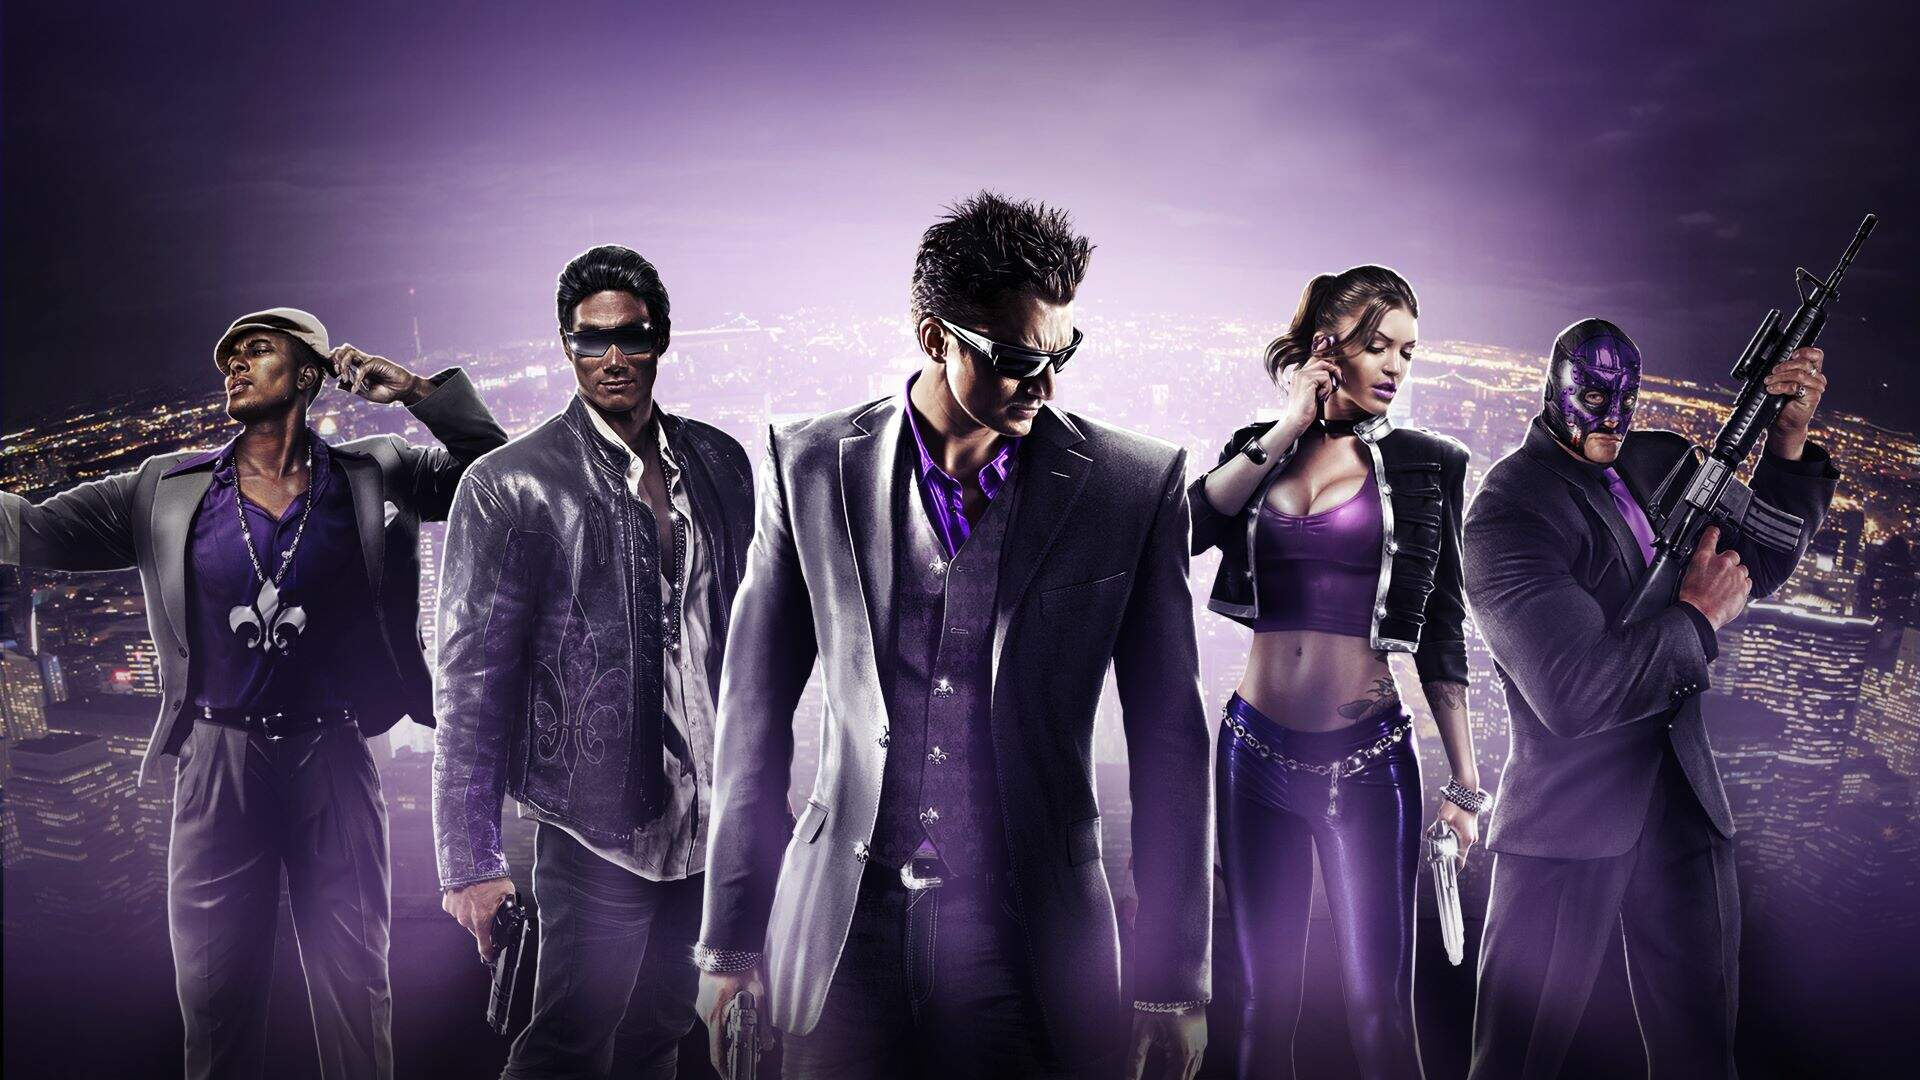 Love Saints Row: The Third's Kayne Moment? Thank the Unsung Heroes of Game Dev